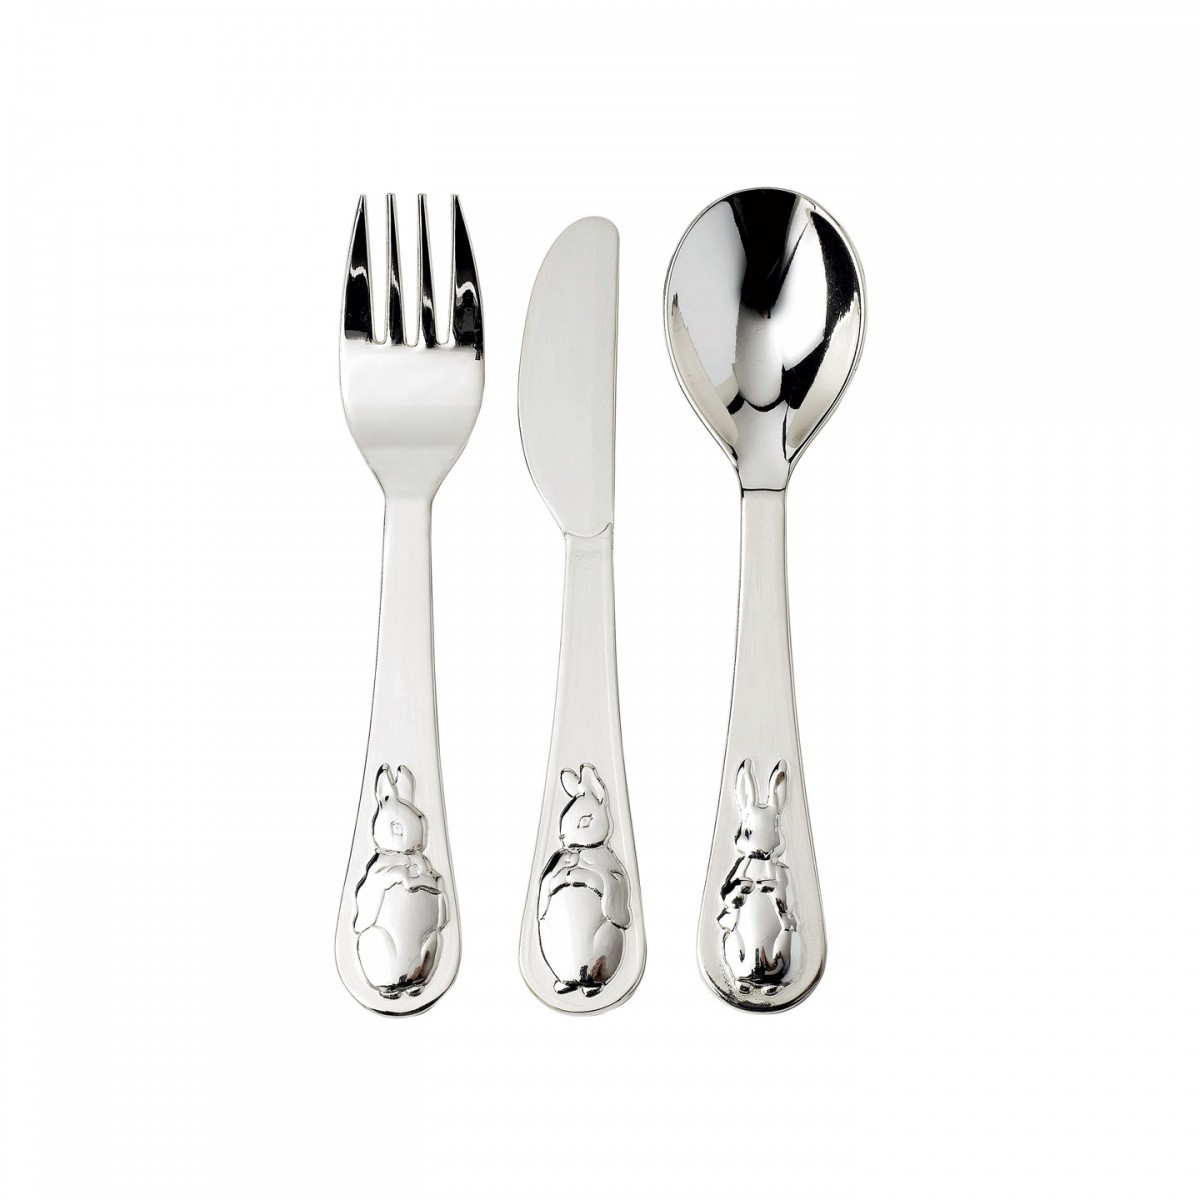 Standing Knife Flatware Peter Rabbit Silver Fork Knife And Spoon Set By Wedgwood